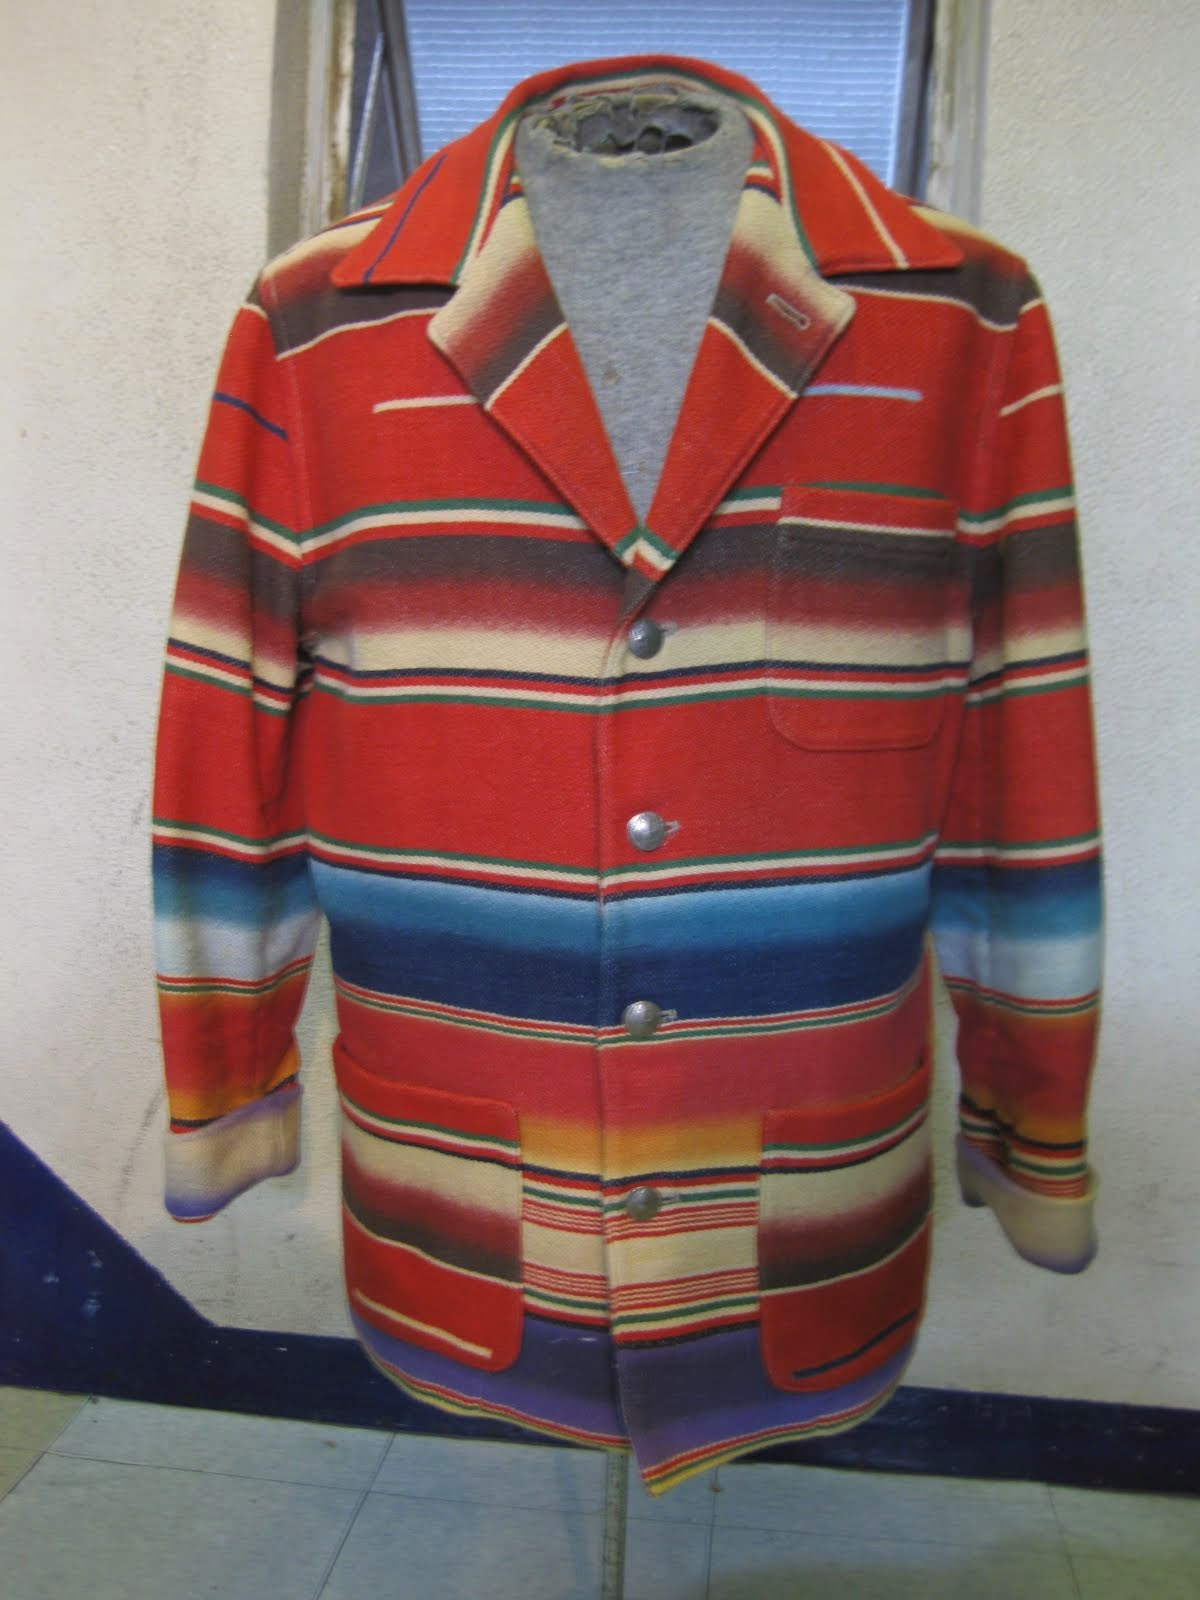 「POLO COUNTRY」             NATIVE柄                COTTON ブランケット               JACKET